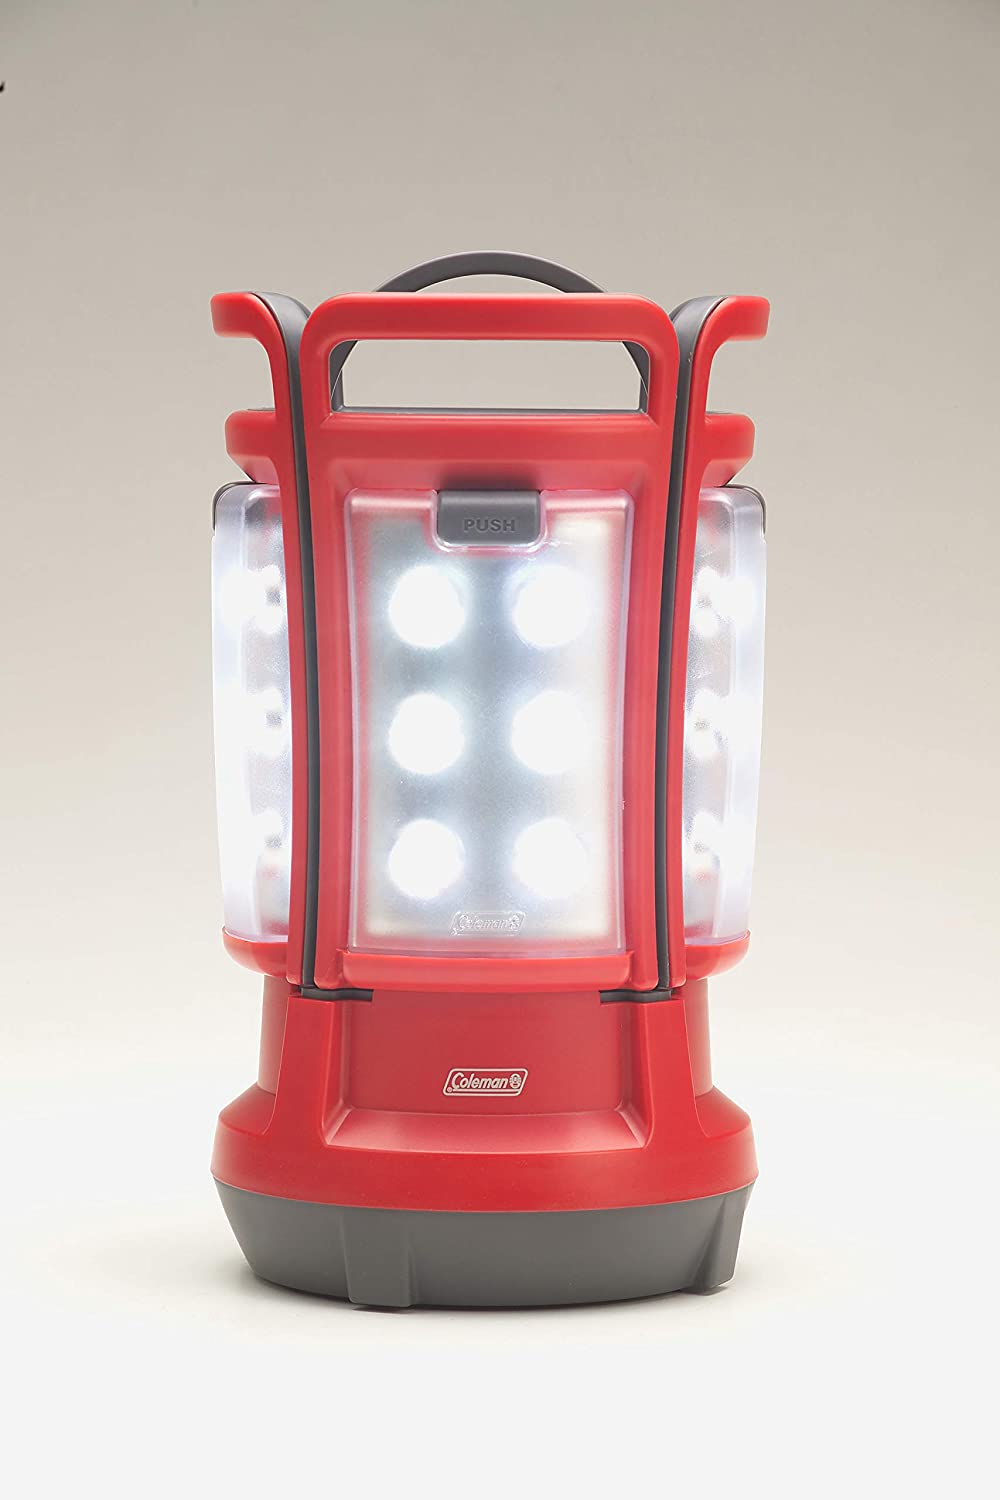 1. Coleman Quad LED Lantern Special Edition Ultra Bright 190 Lumens, Red